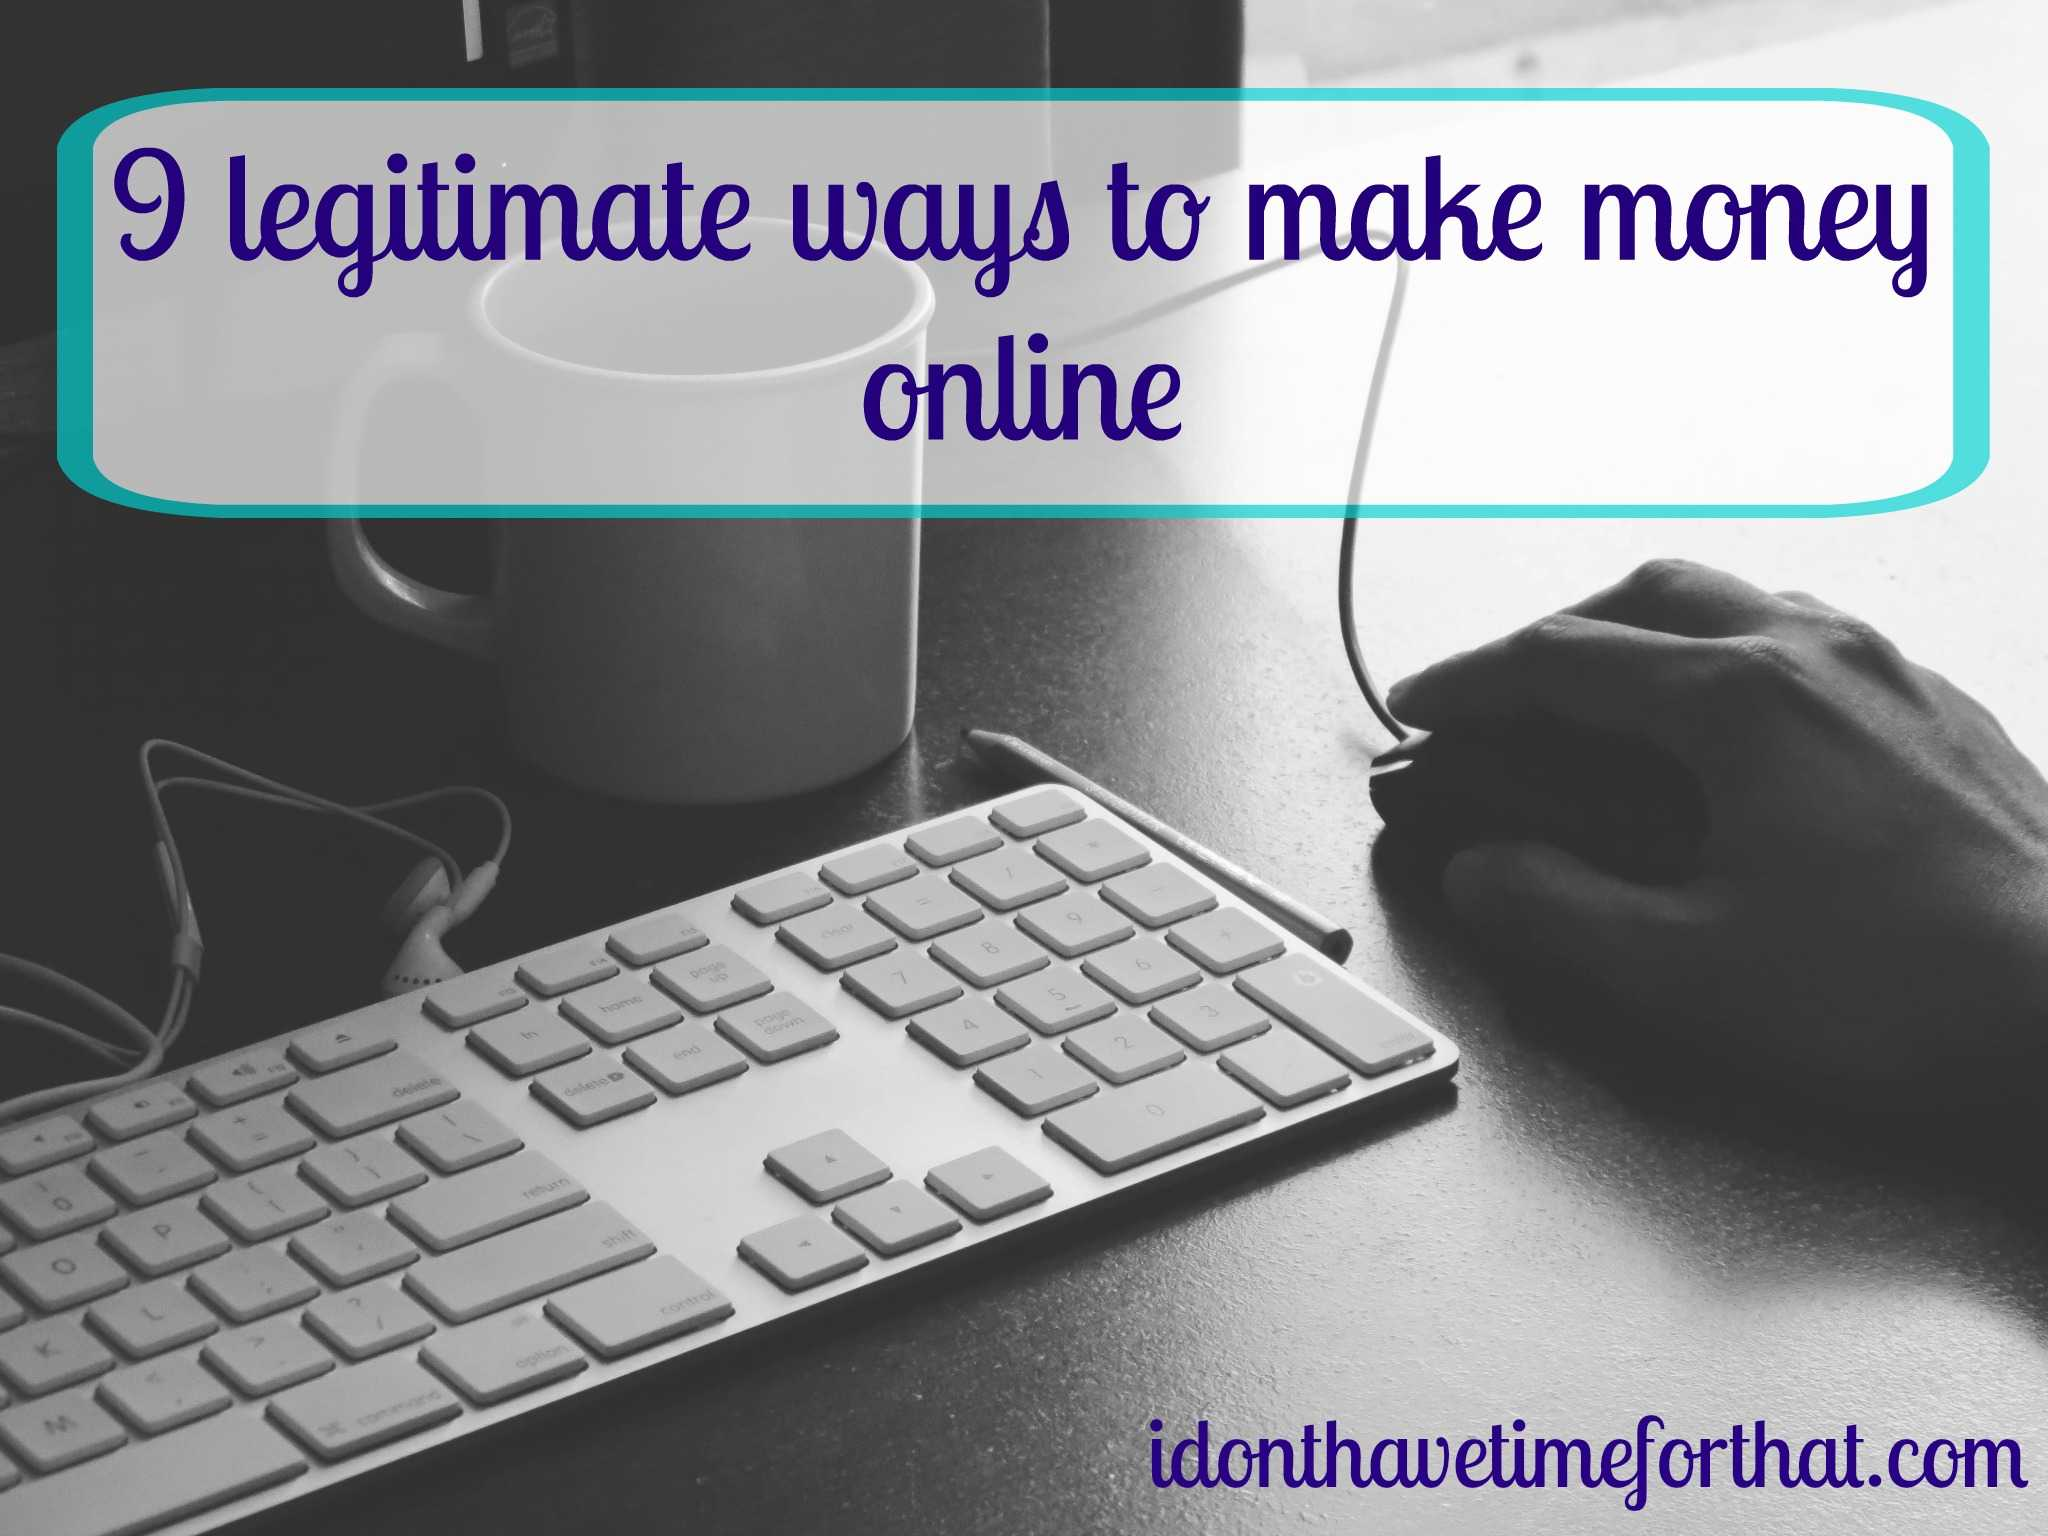 9 Legitimate Ways To Make Money Online